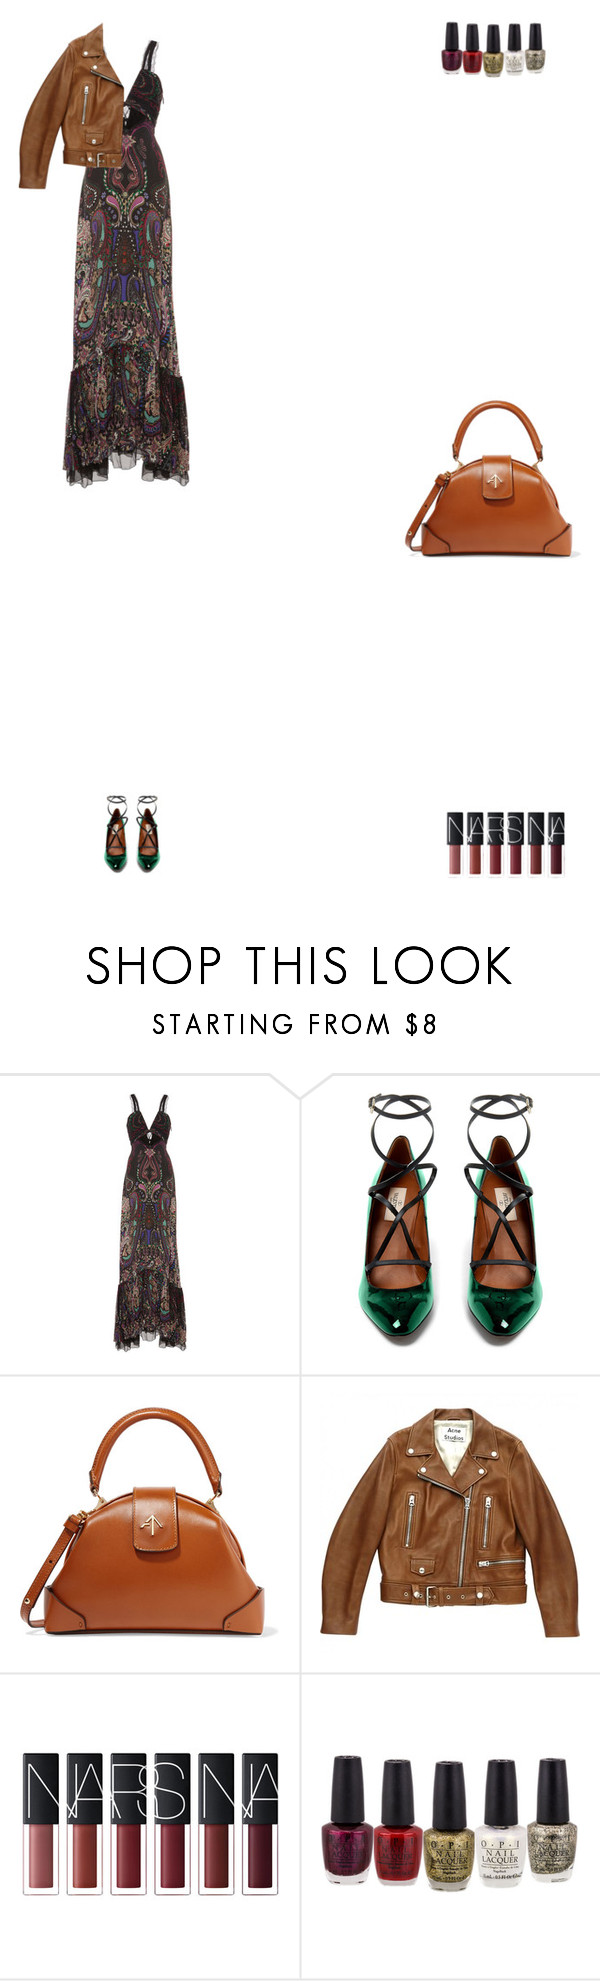 """Grace"" by zoechengrace ❤ liked on Polyvore featuring Roberto Cavalli, Valentino, MANU Atelier and Acne Studios"